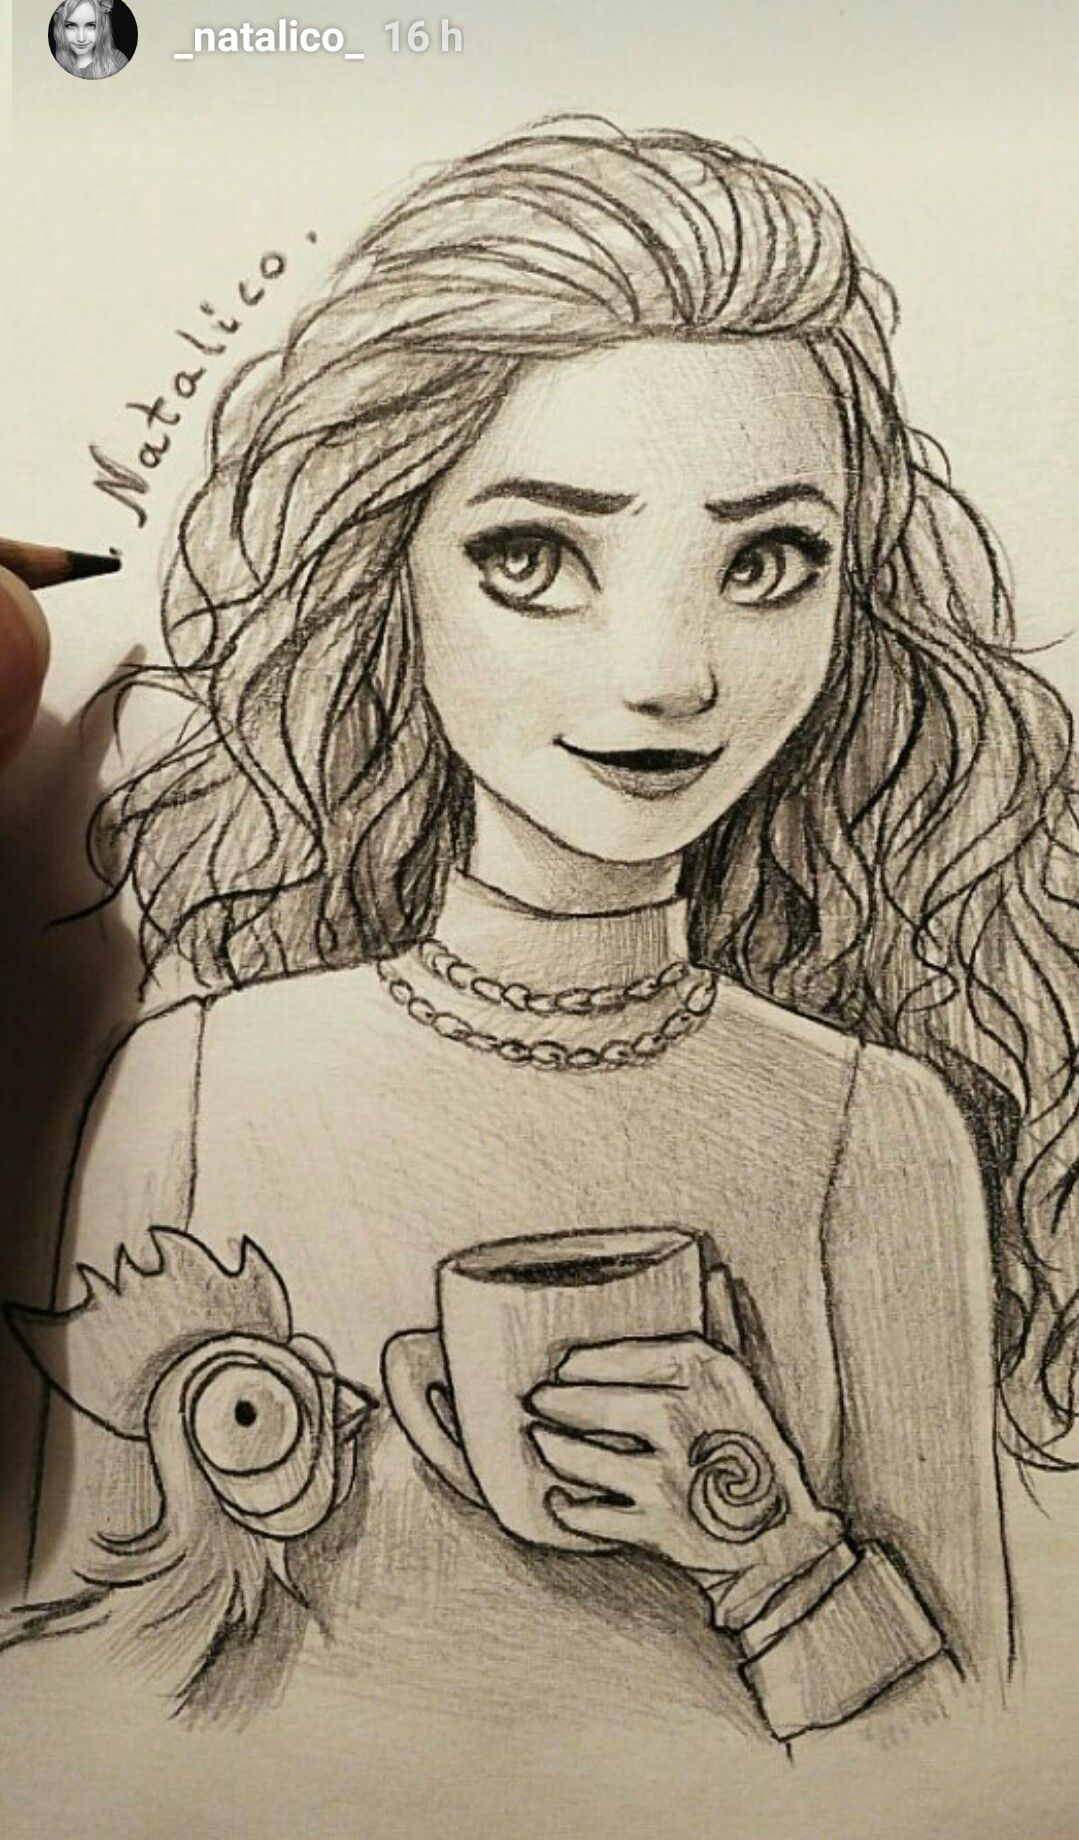 Moana Natalico Ig In Love With Draw Drawings Art Sketches